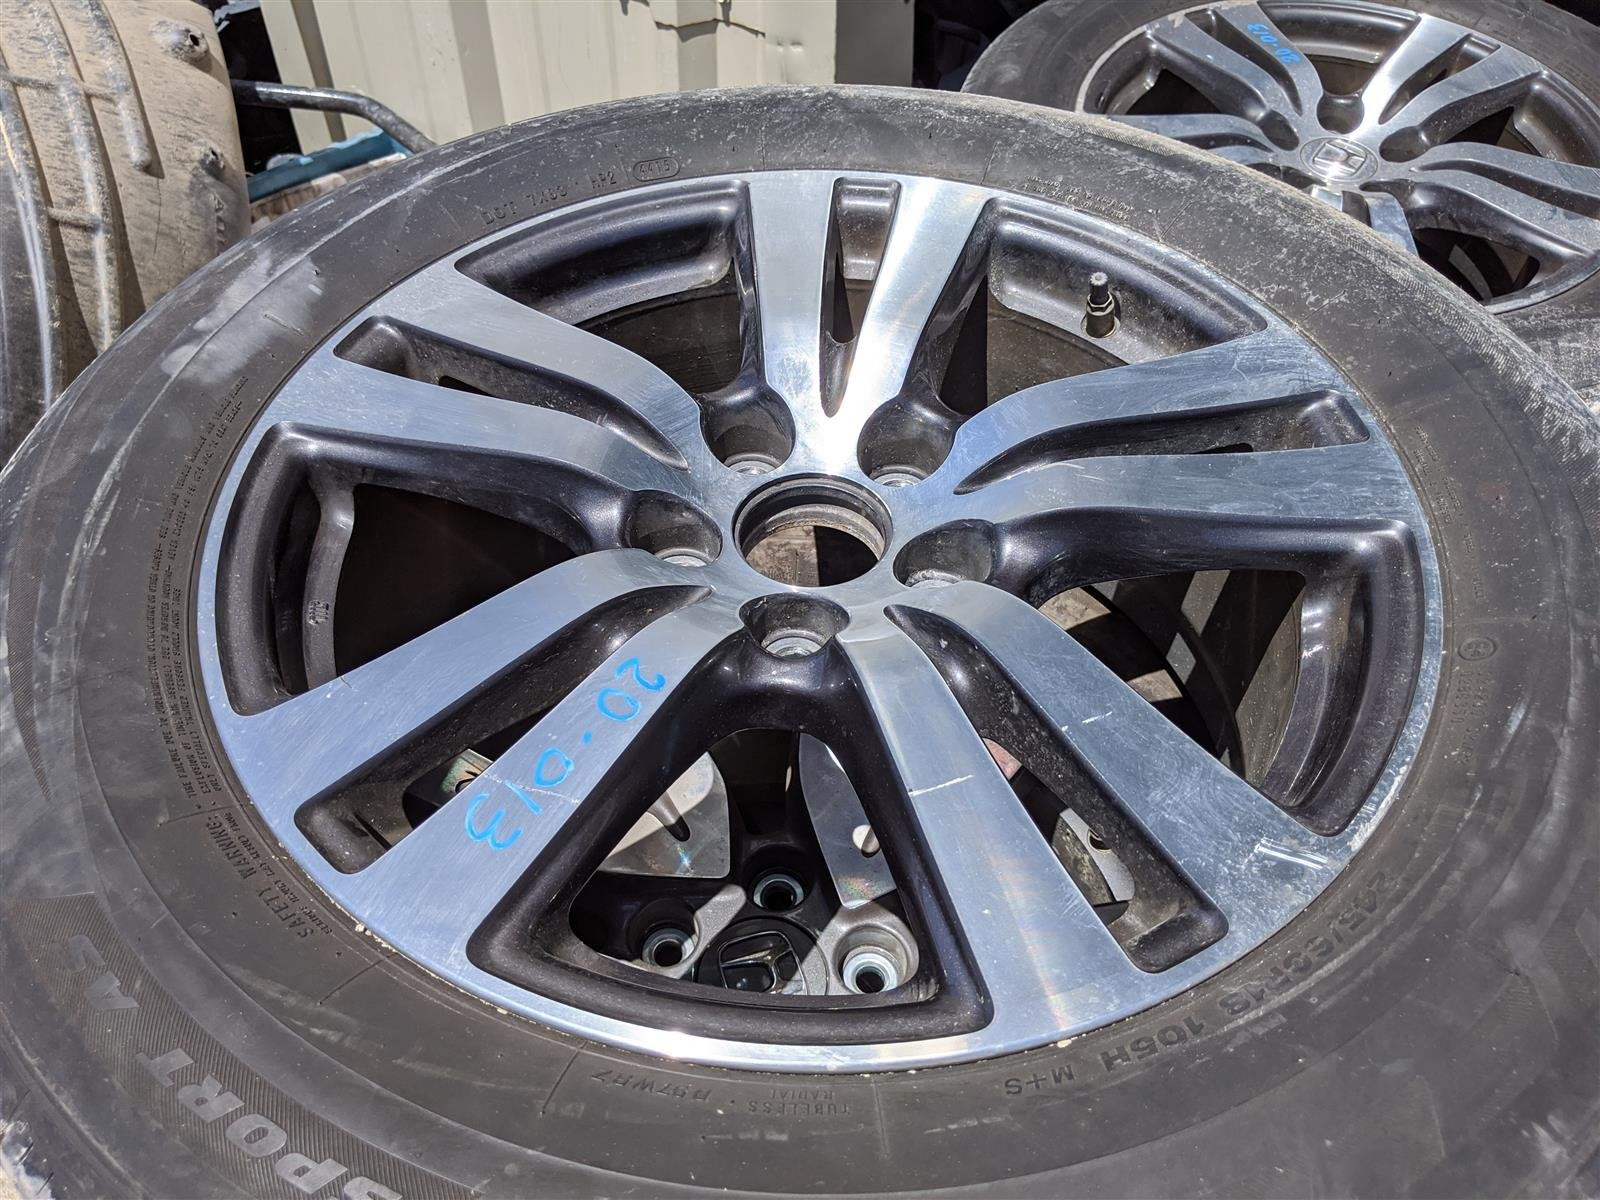 2016 Honda Pilot 18 Inch Alloy Wheel Rim 1 Replacement